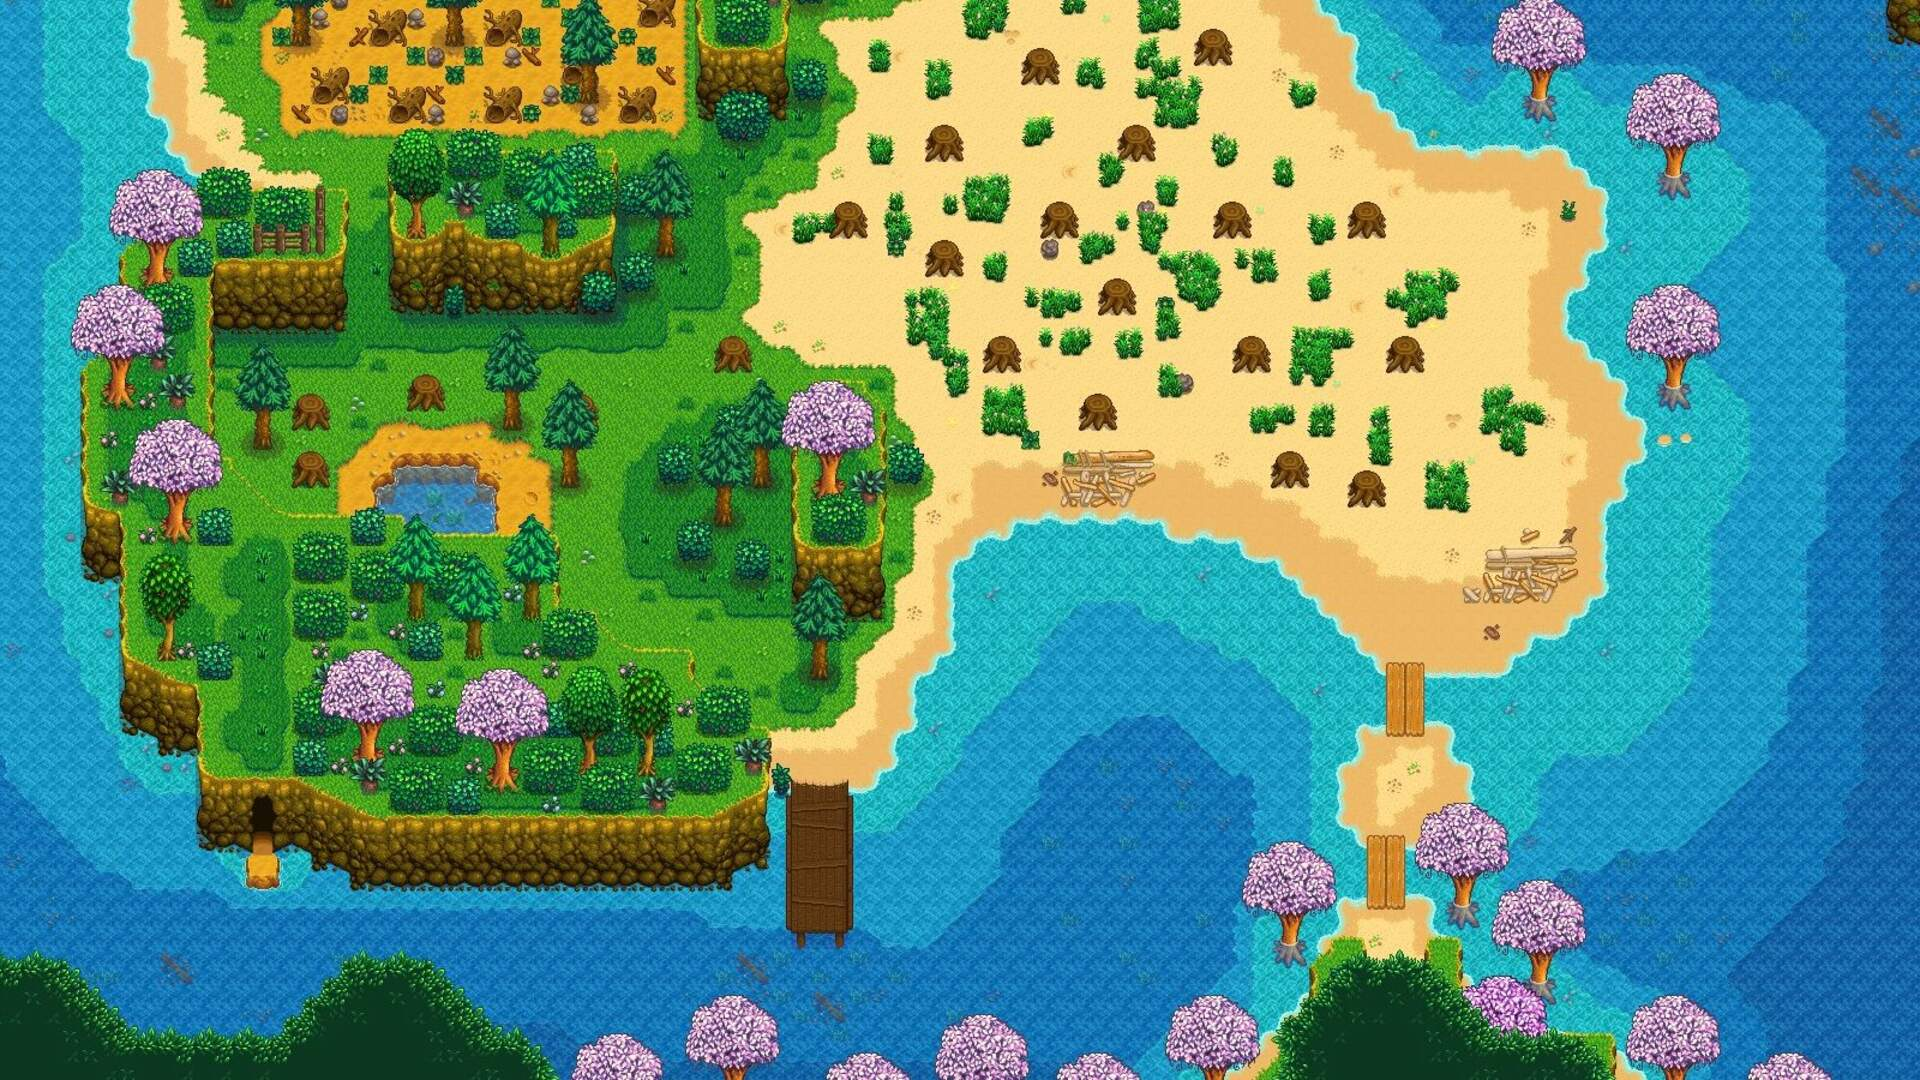 Stardew Valley Just Got Beaches, Fish Tanks, Swimming Ducks, and a Whole Lot More